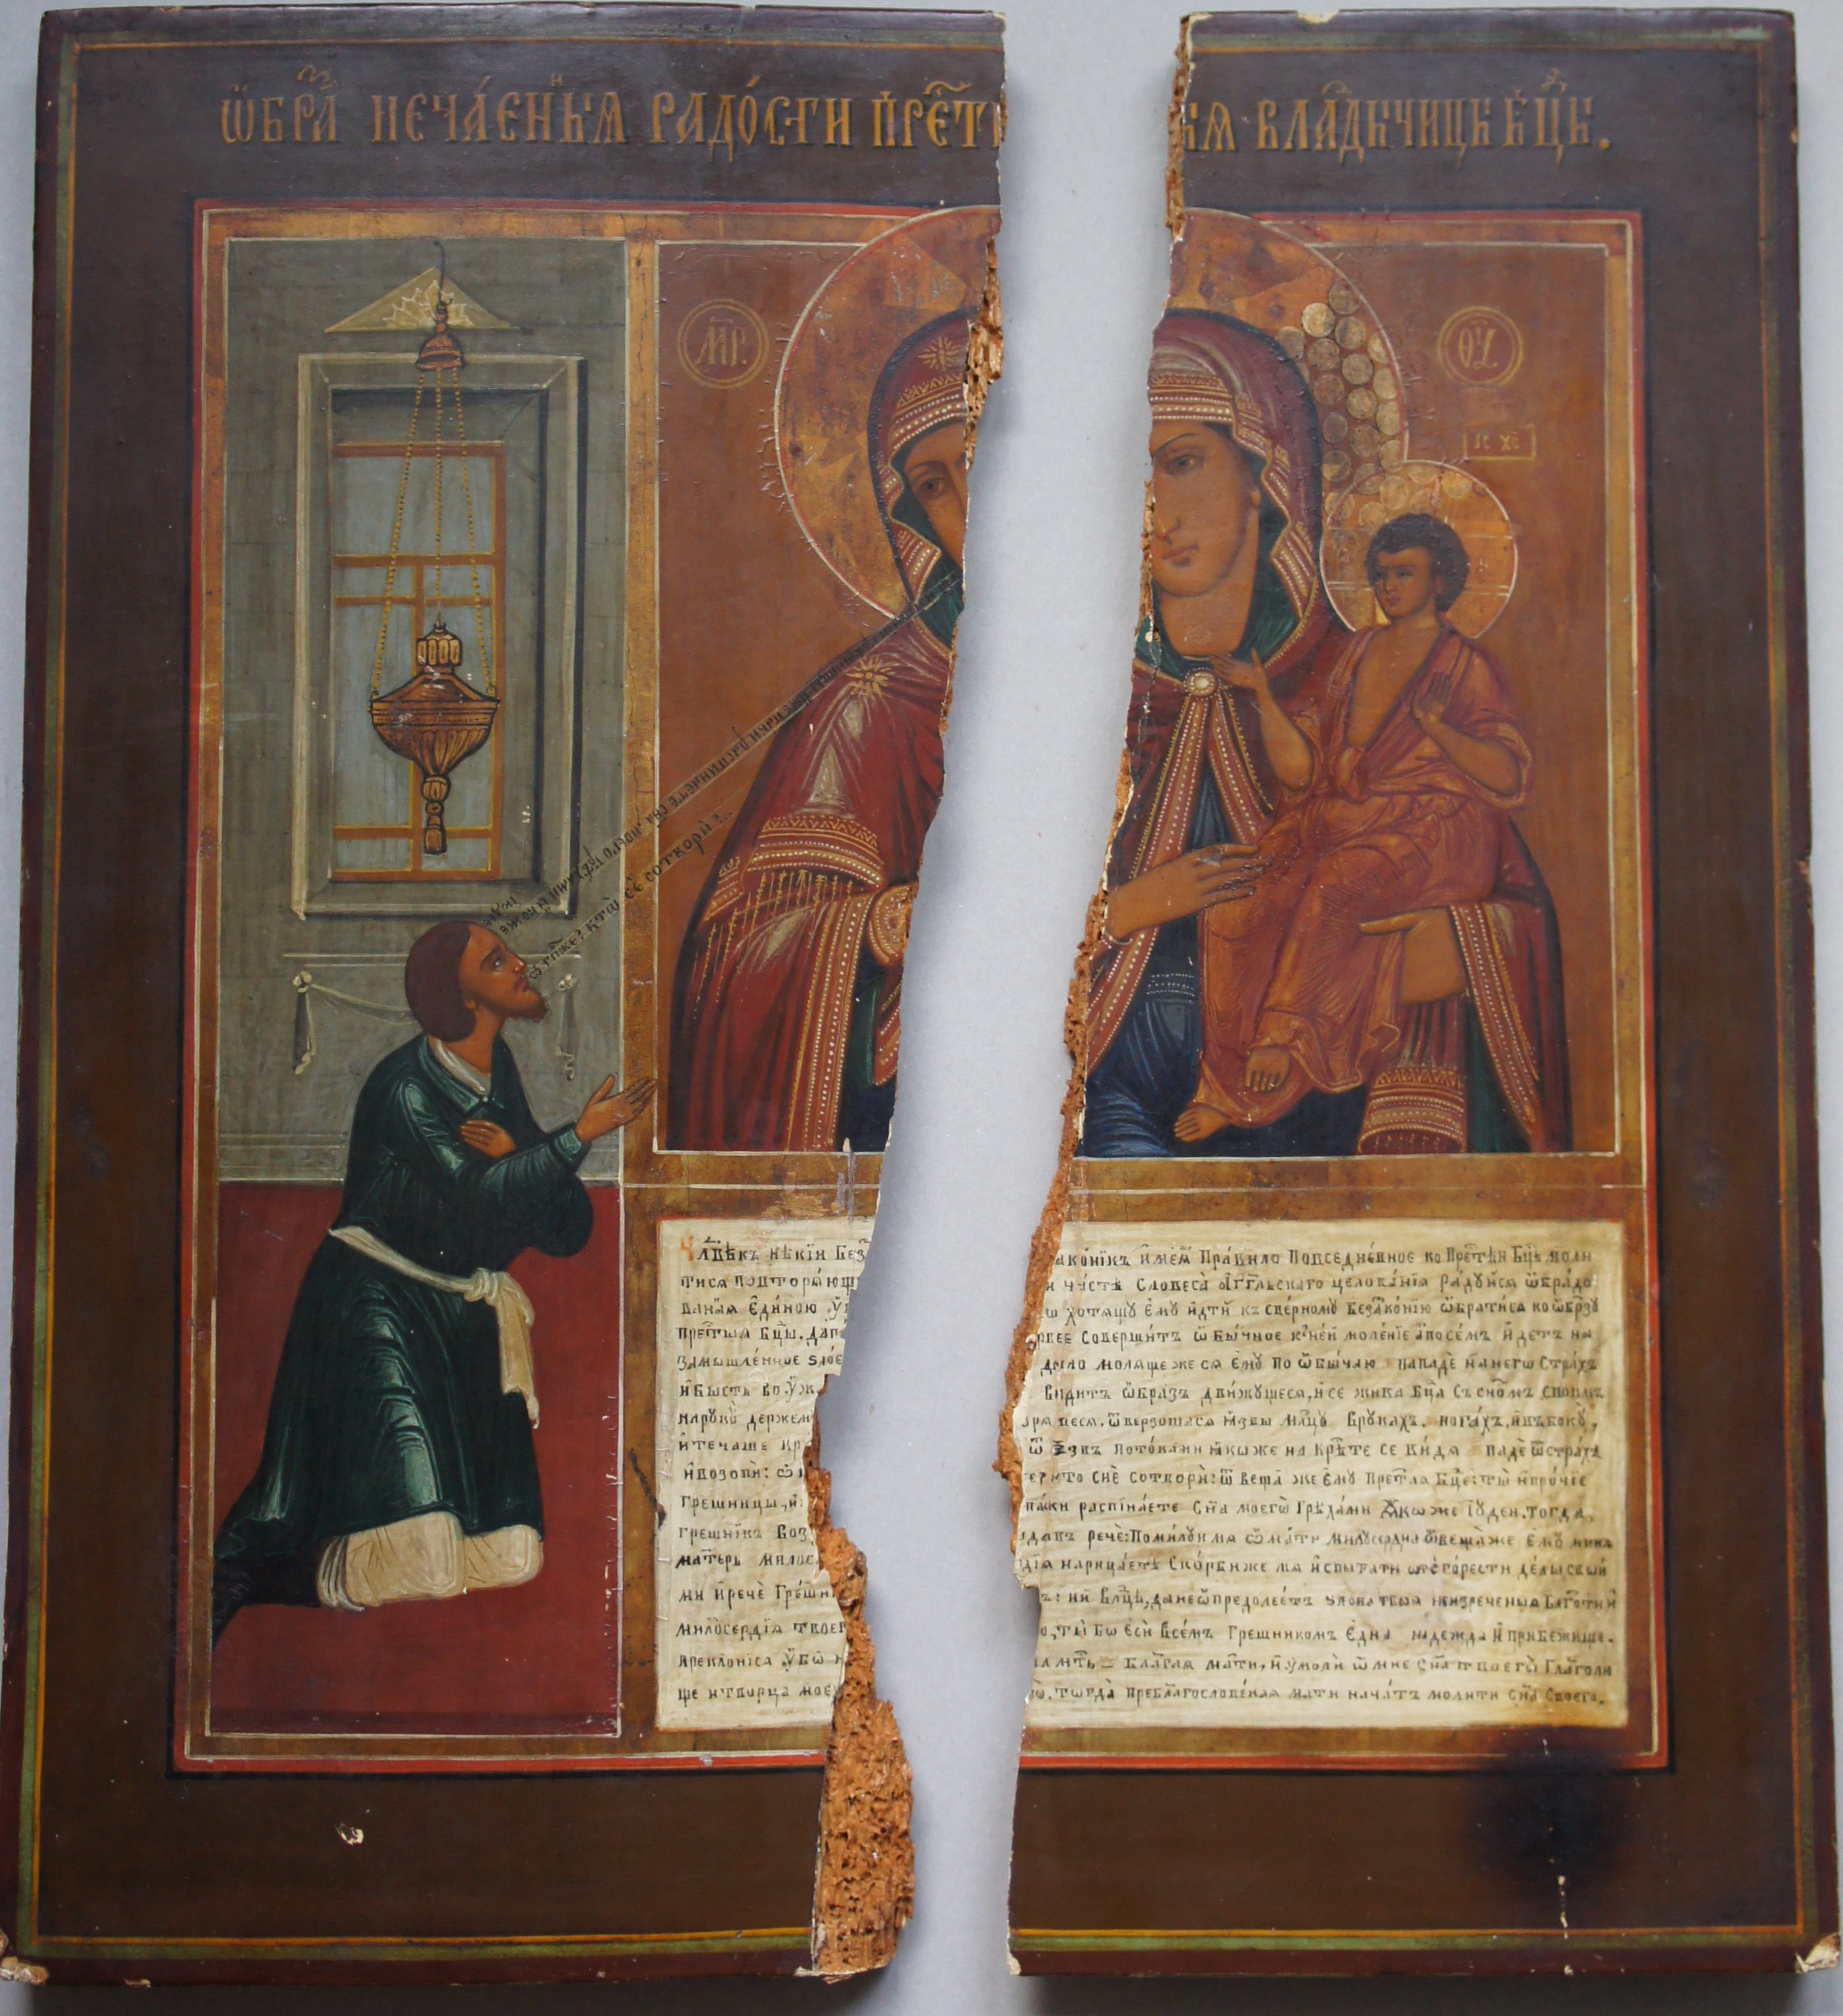 Photo of icon before painting restoration